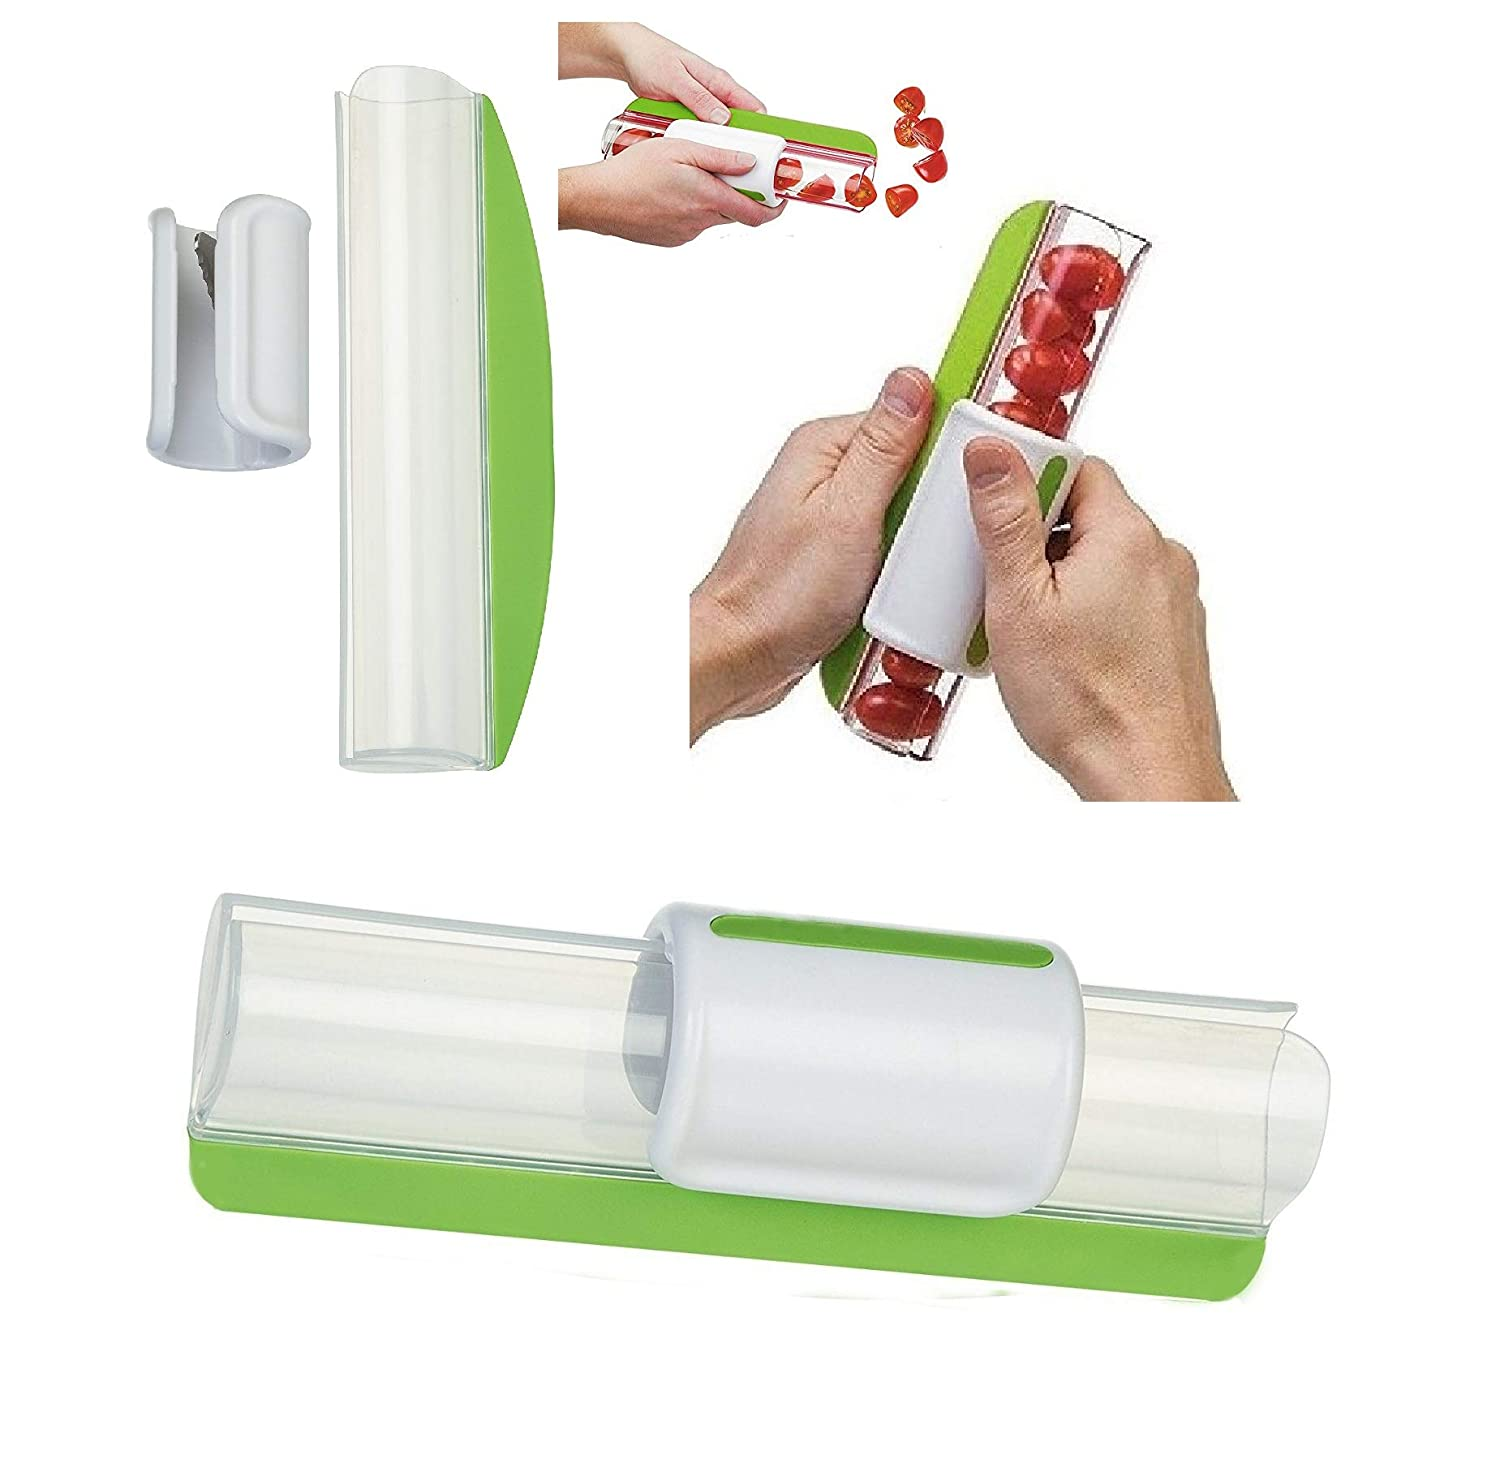 Latest 2018 Slicer For Cherry Tomatoes, Grape, Strawberry etc. - Fast and Easy Large Amount of Salad (GREEN) Tiger Eyes